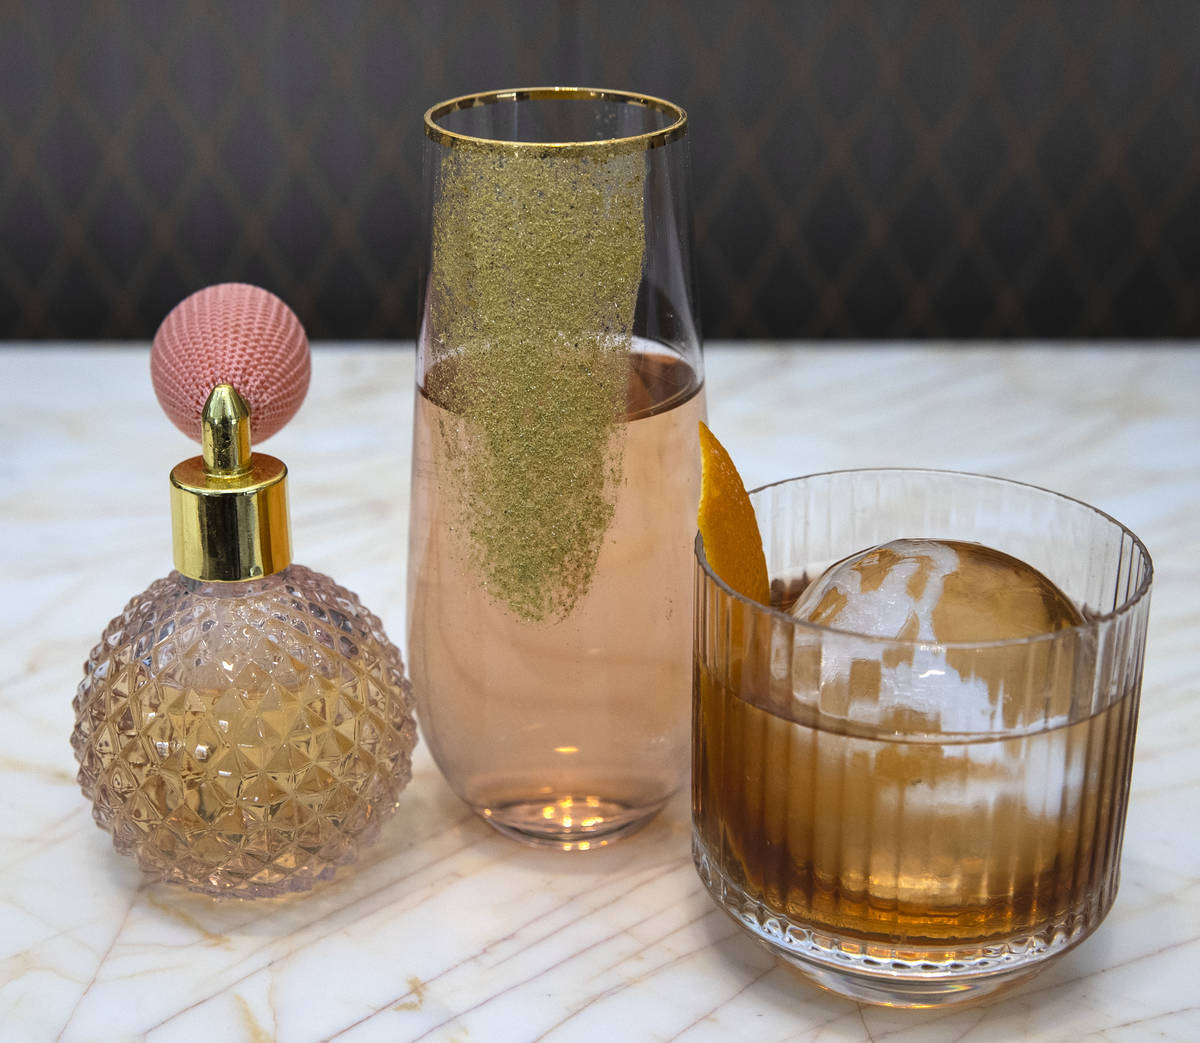 Edible fragrance, left, and cocktail drinks, Stepford Wife, center, Film Noir, right, are displ ...